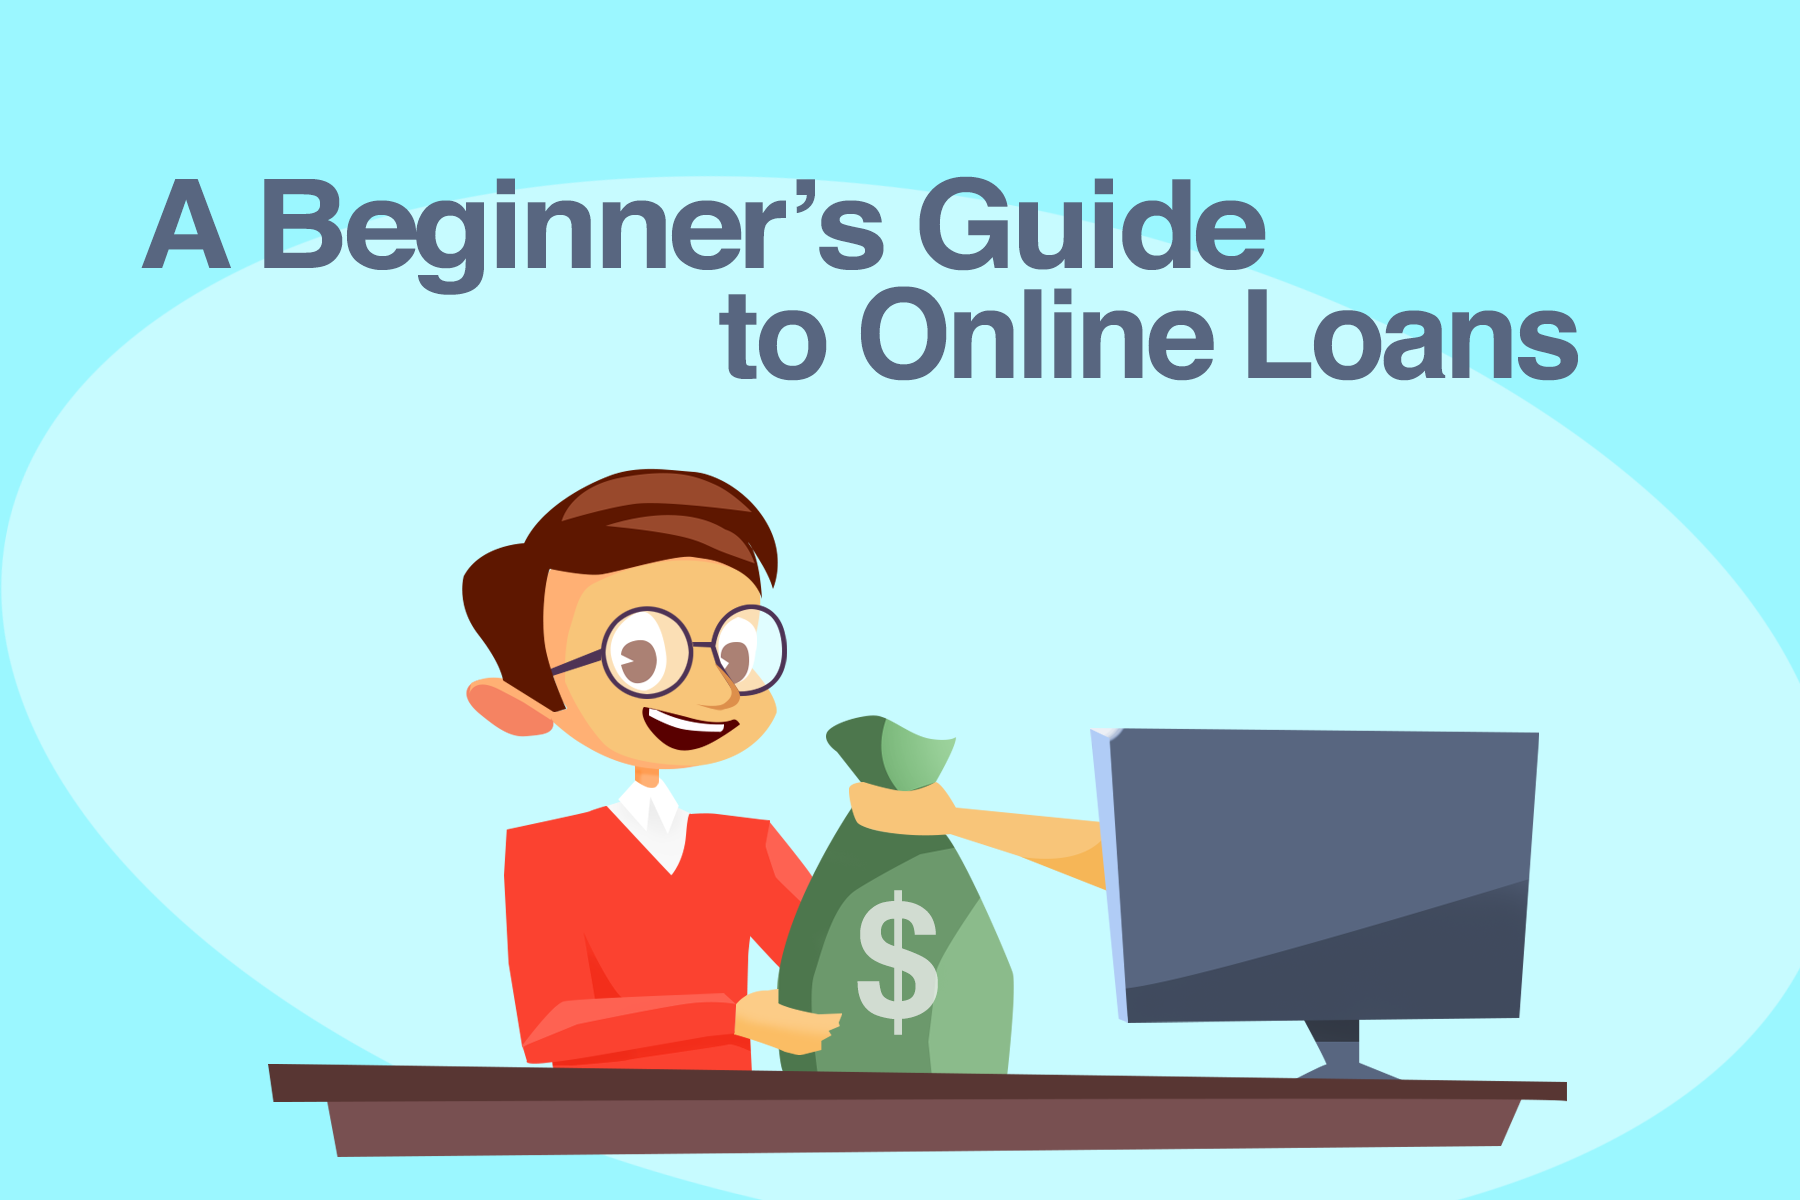 A beginner's guide to online loans